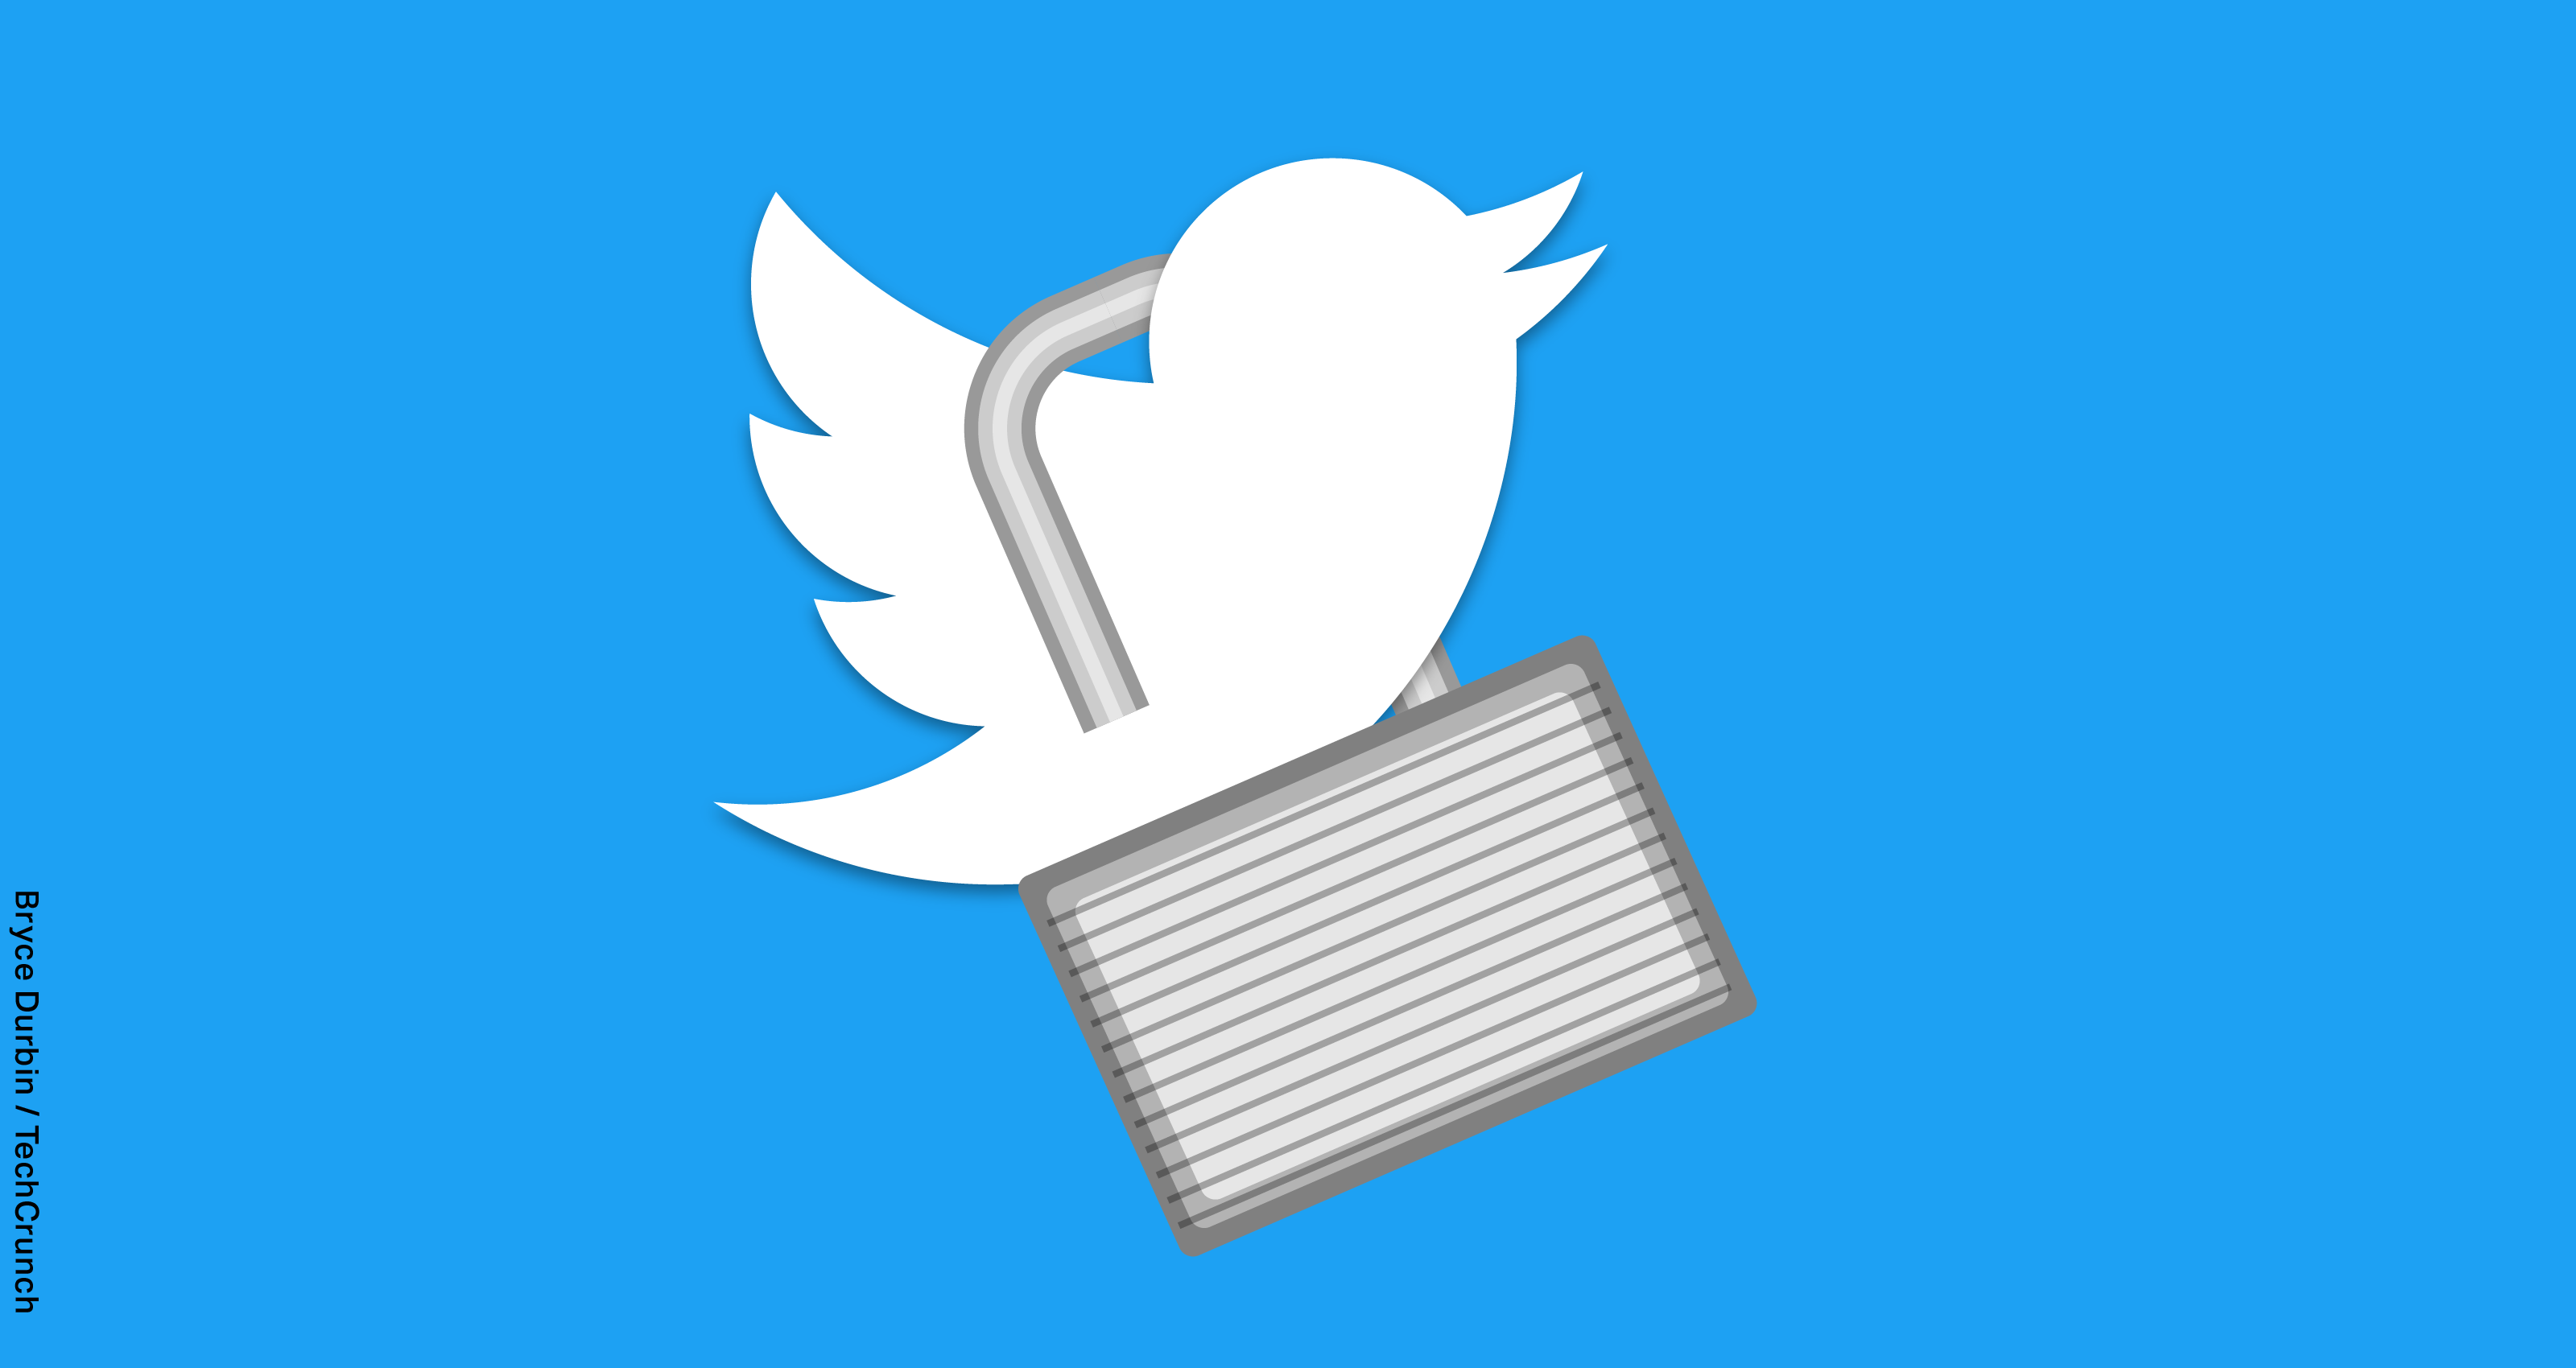 After year-long lockout, Twitter is finally giving people their